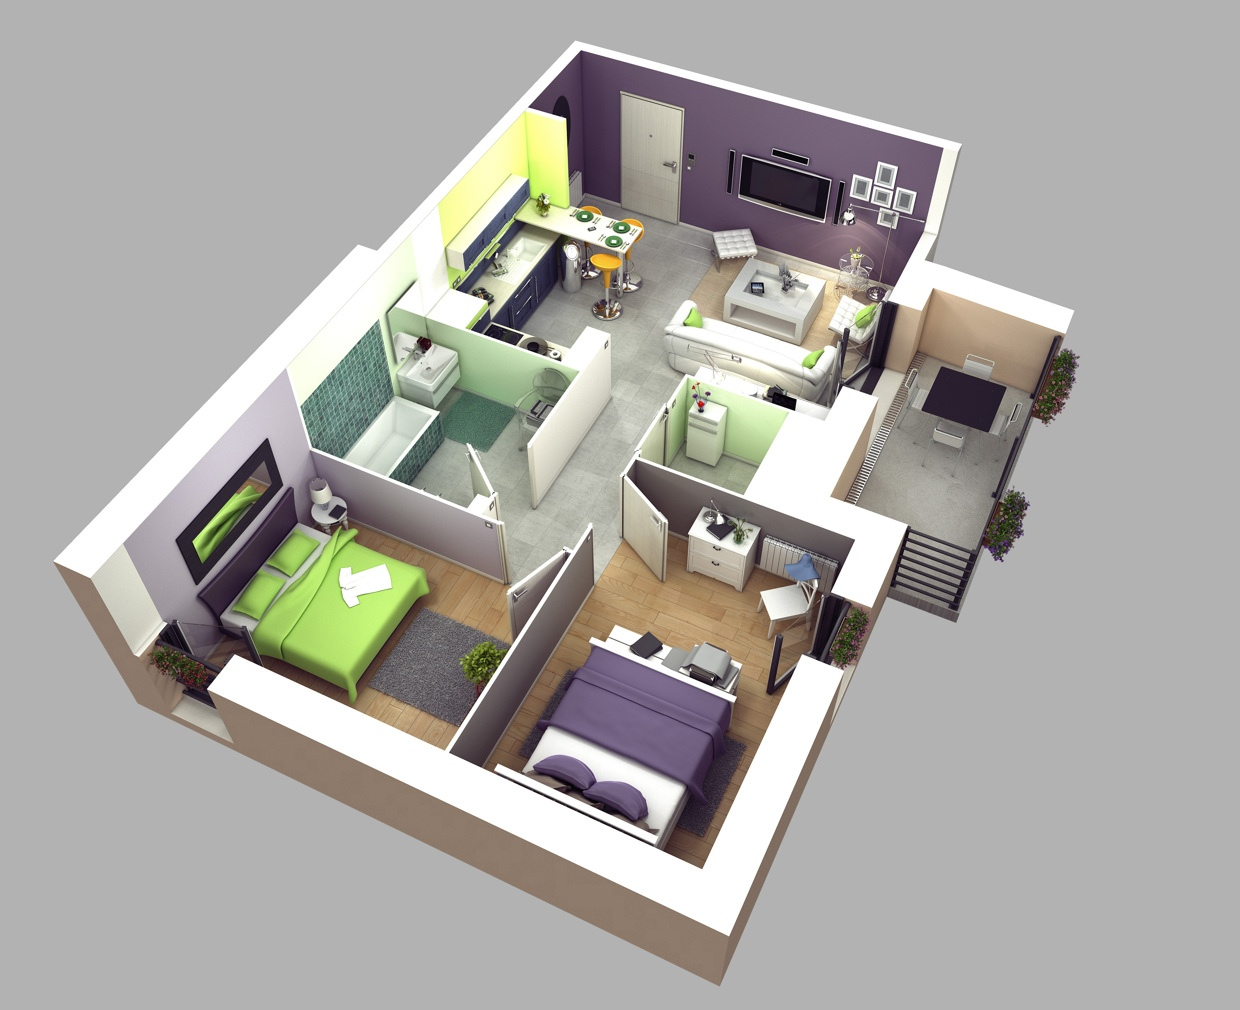 2 Bedroom House Plans 3d Of 50 3d Floor Plans Lay Out Designs For 2 Bedroom House Or